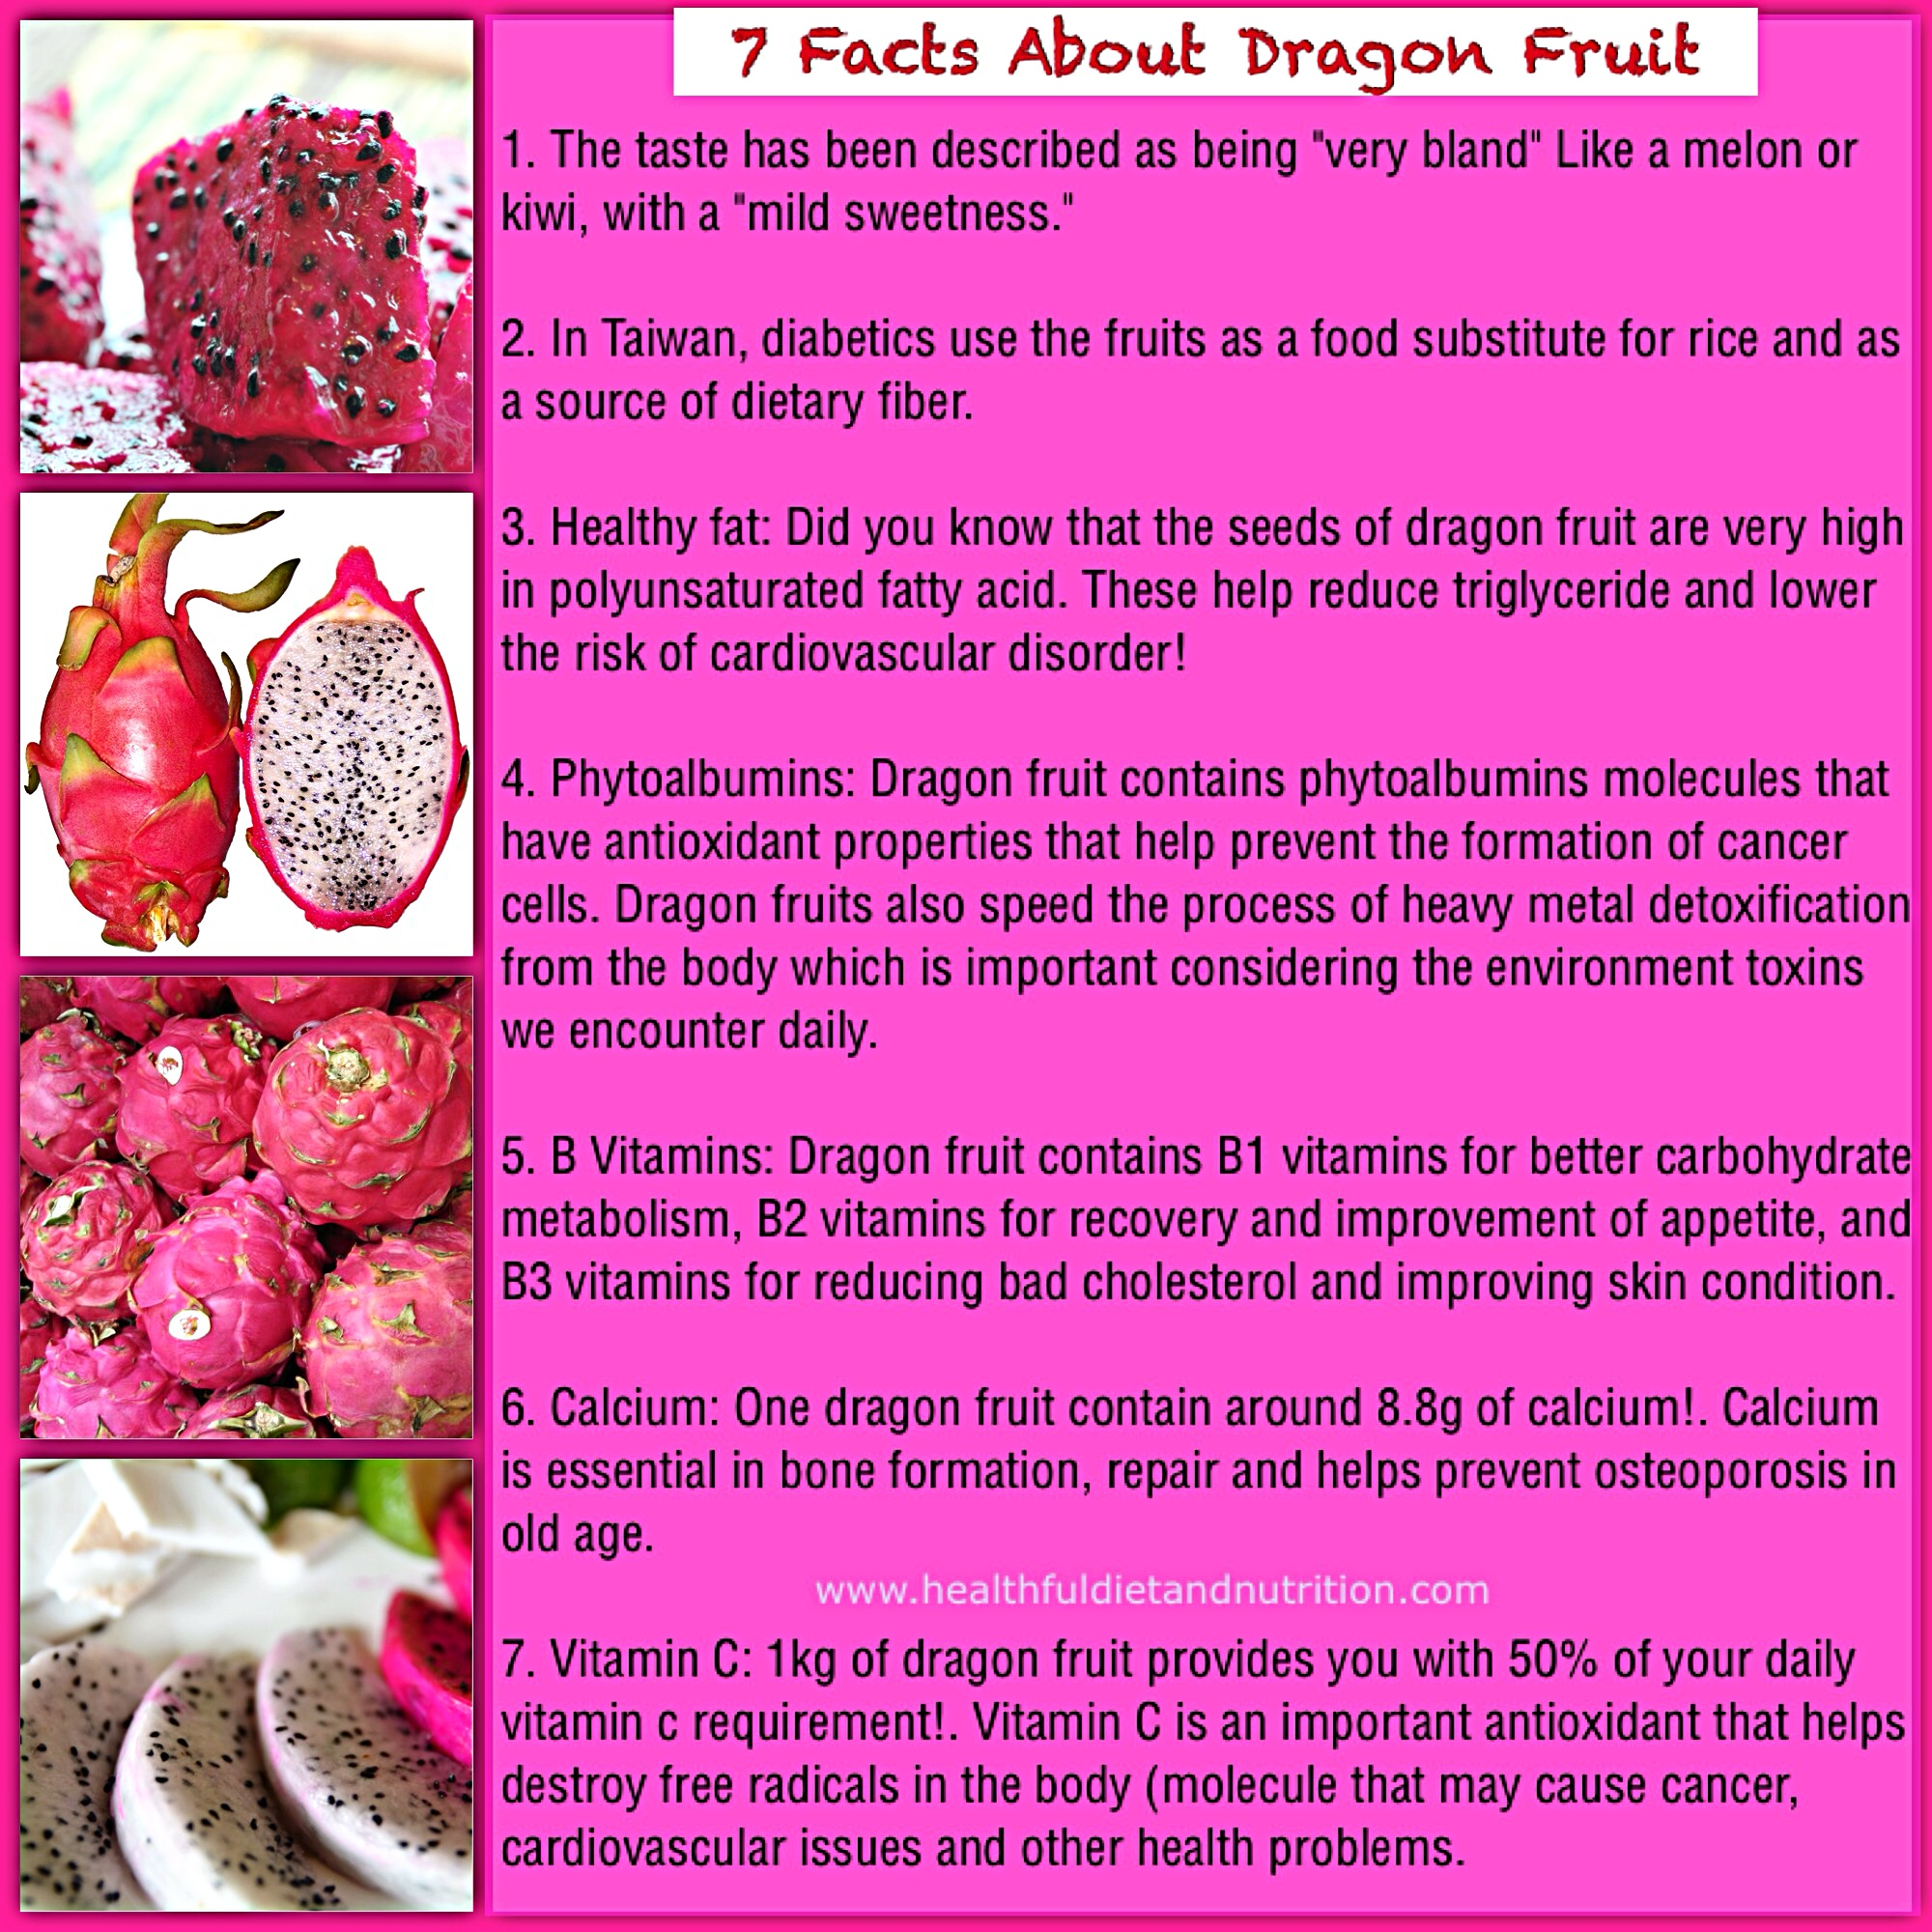 7 Facts About Dragon Fruit